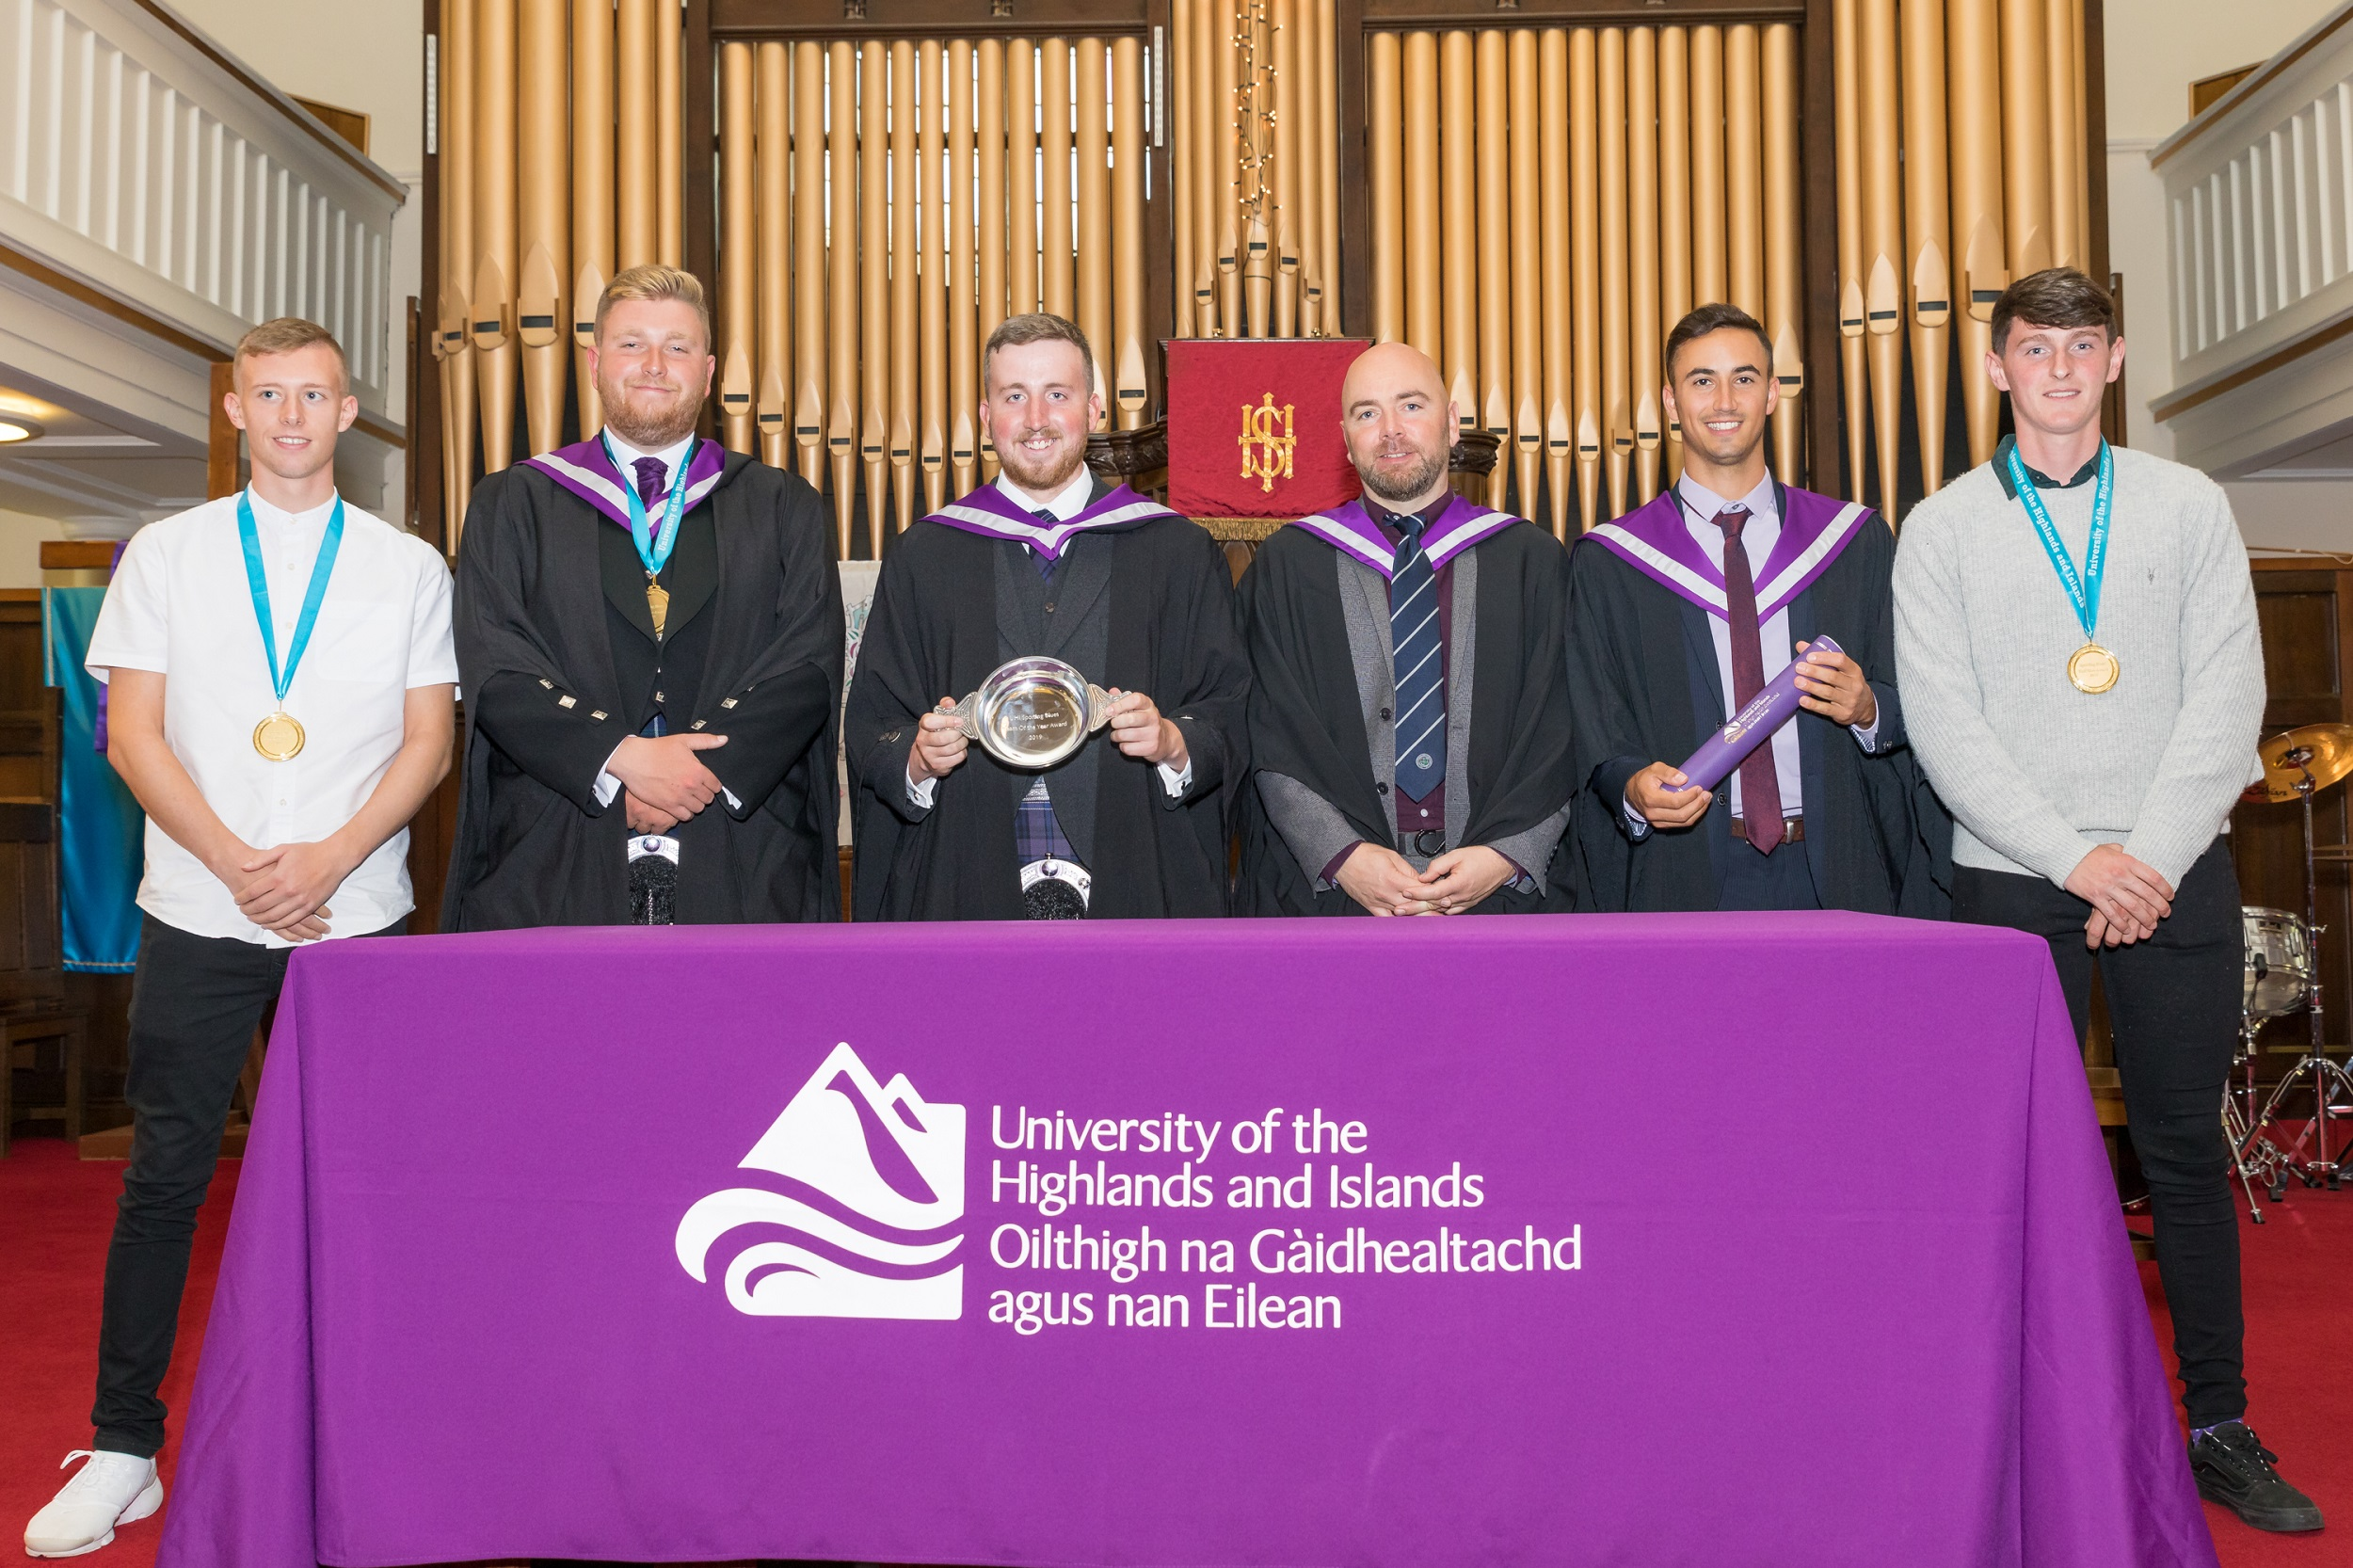 Image (left to right) Lewis Johnson, Graham Minton, Alistair Mcnaughton, Alan Fleming, Riccardo Cellerino, John Oster.